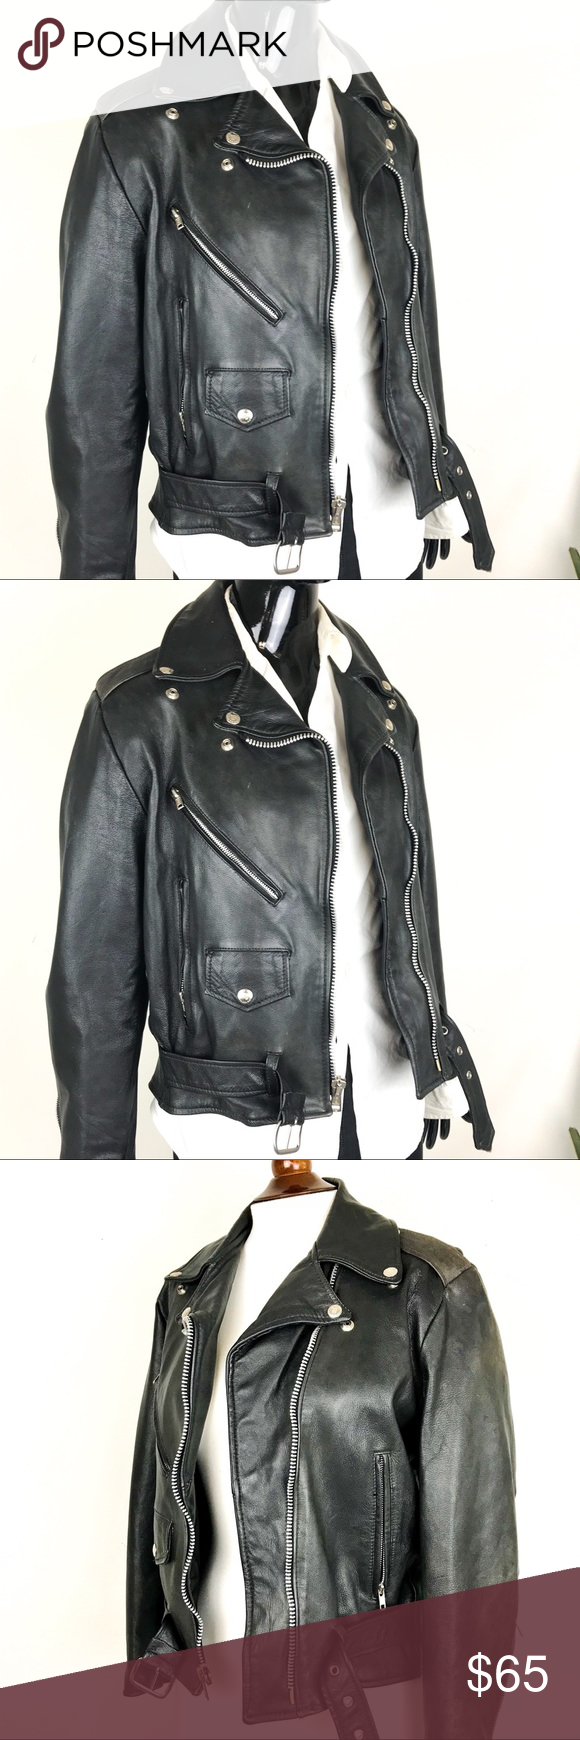 Vintage Excelled Faux Leather Moto Jacket Size 8 Vintage Leather Motorcycle Jacket Leather Moto Jacket Motorcycle Jacket [ 1740 x 580 Pixel ]